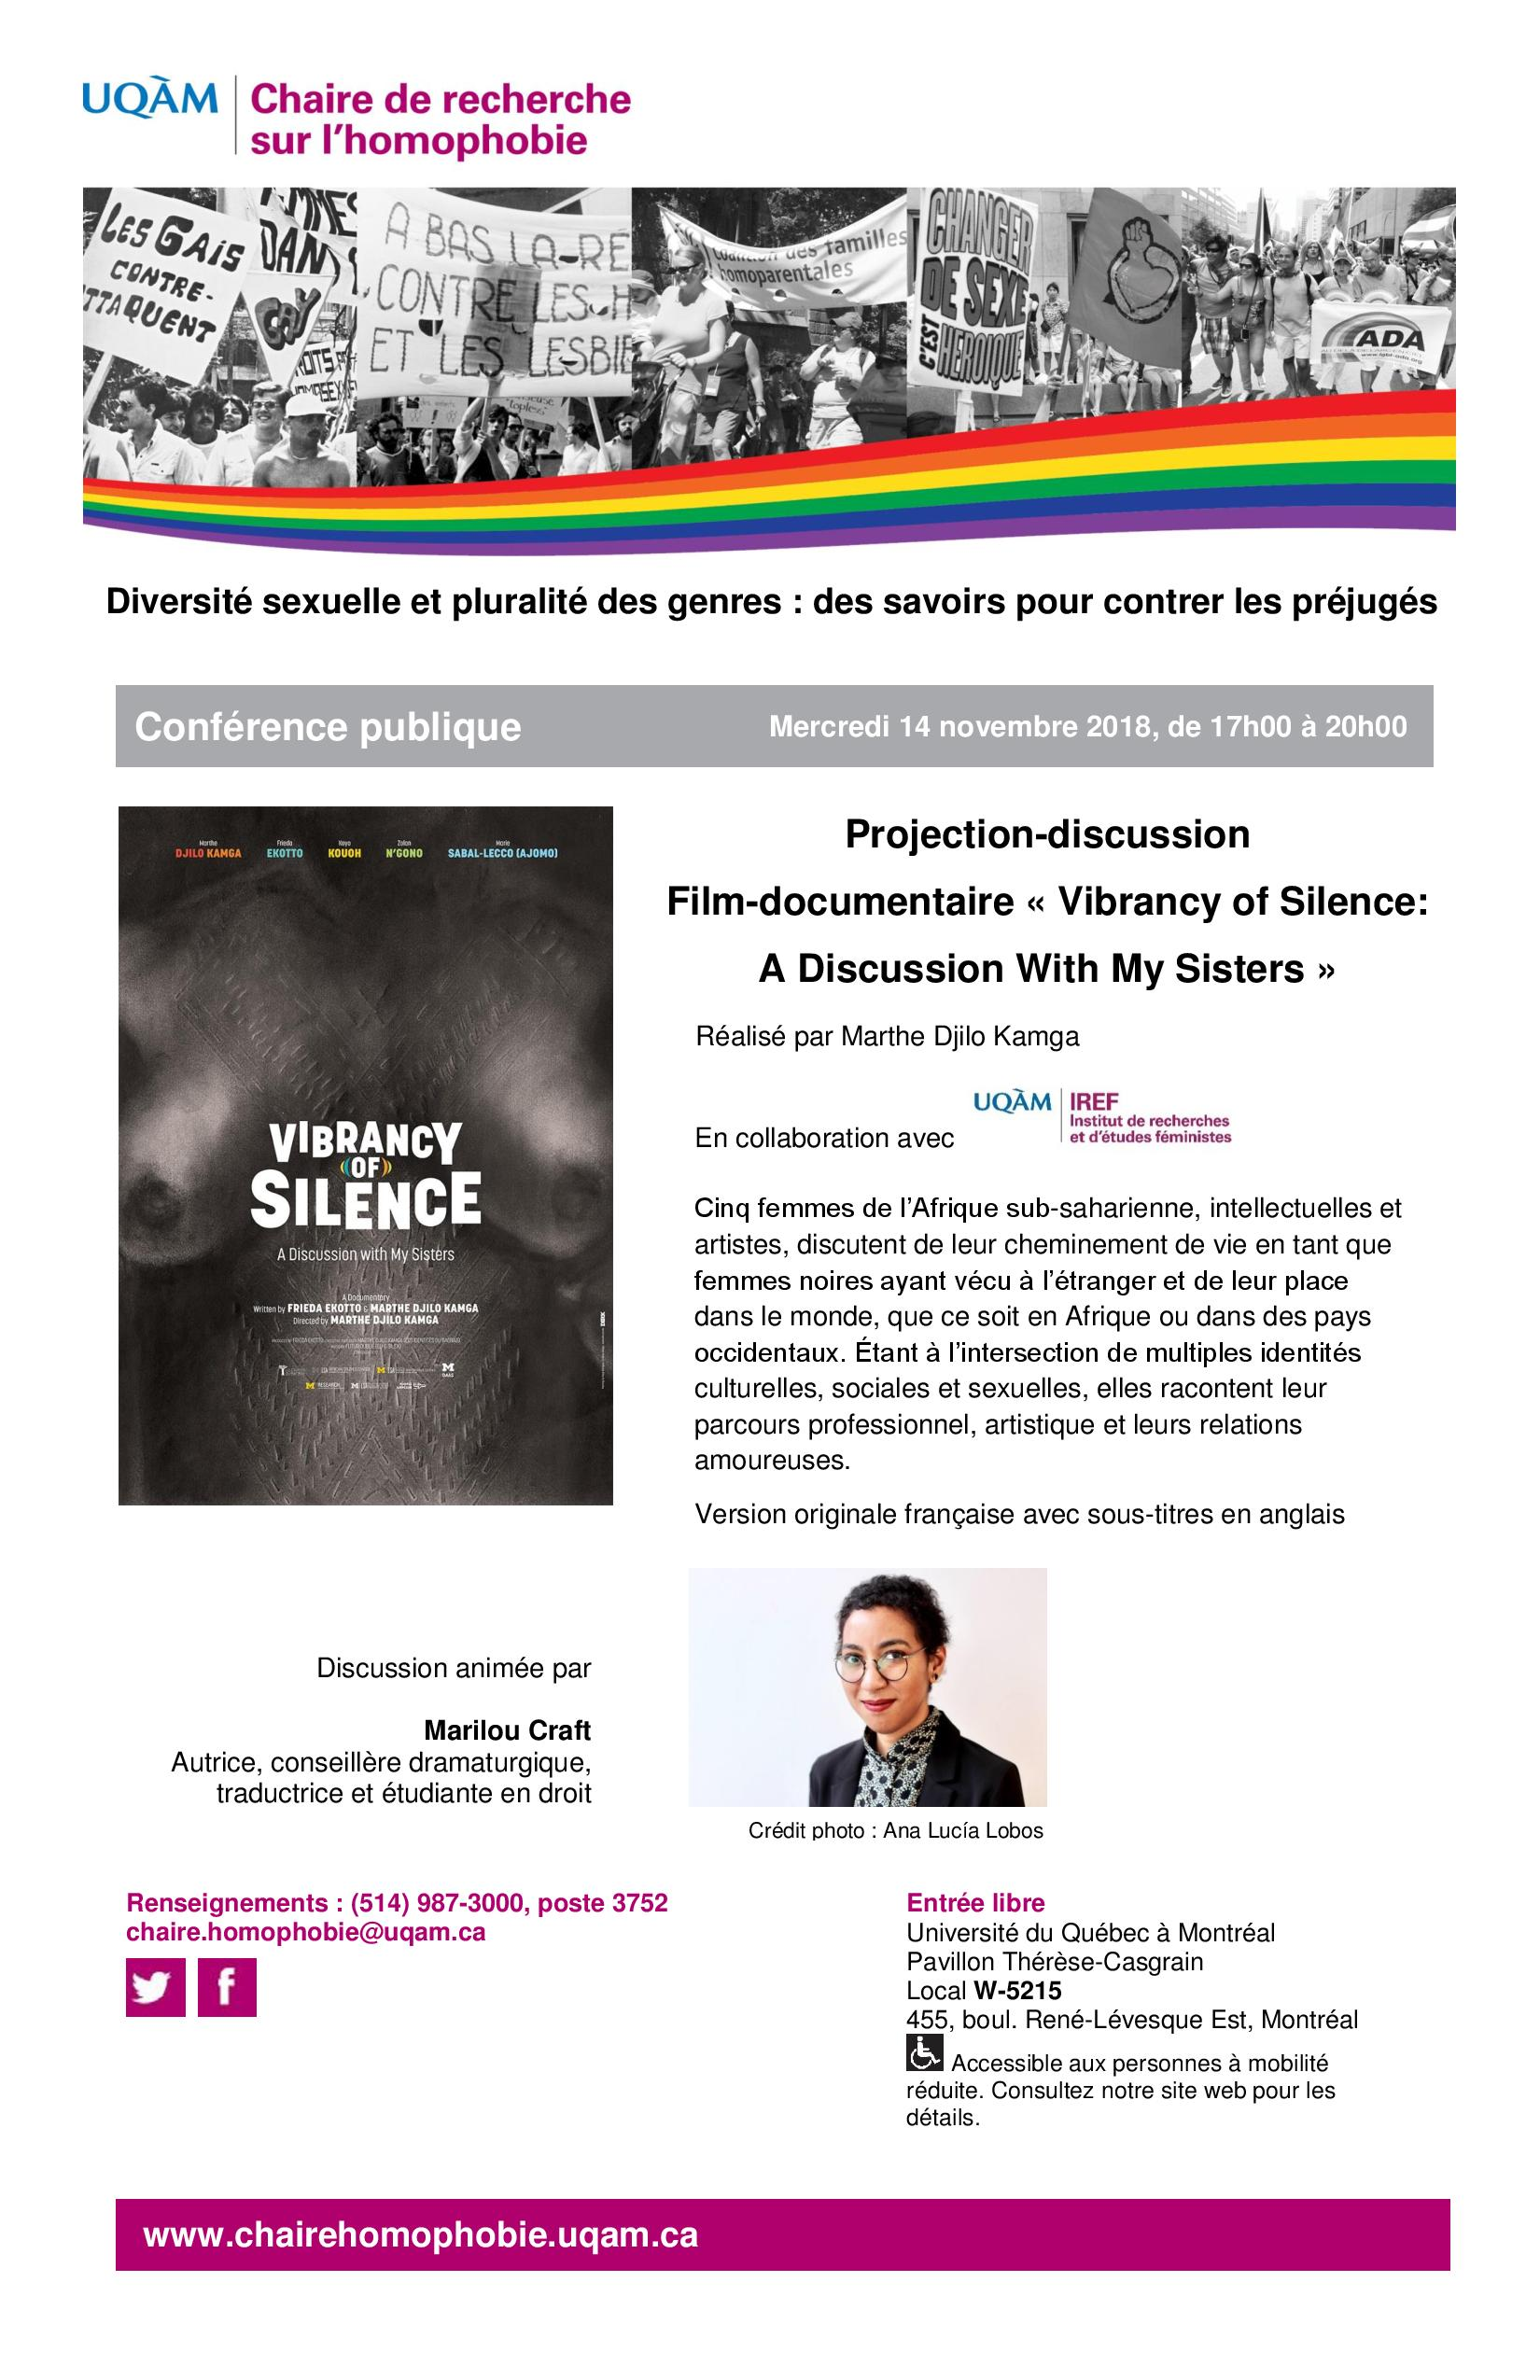 Projection-discussion | Film-documentaire « Vibrancy of Silence: A Discussion With My Sisters »